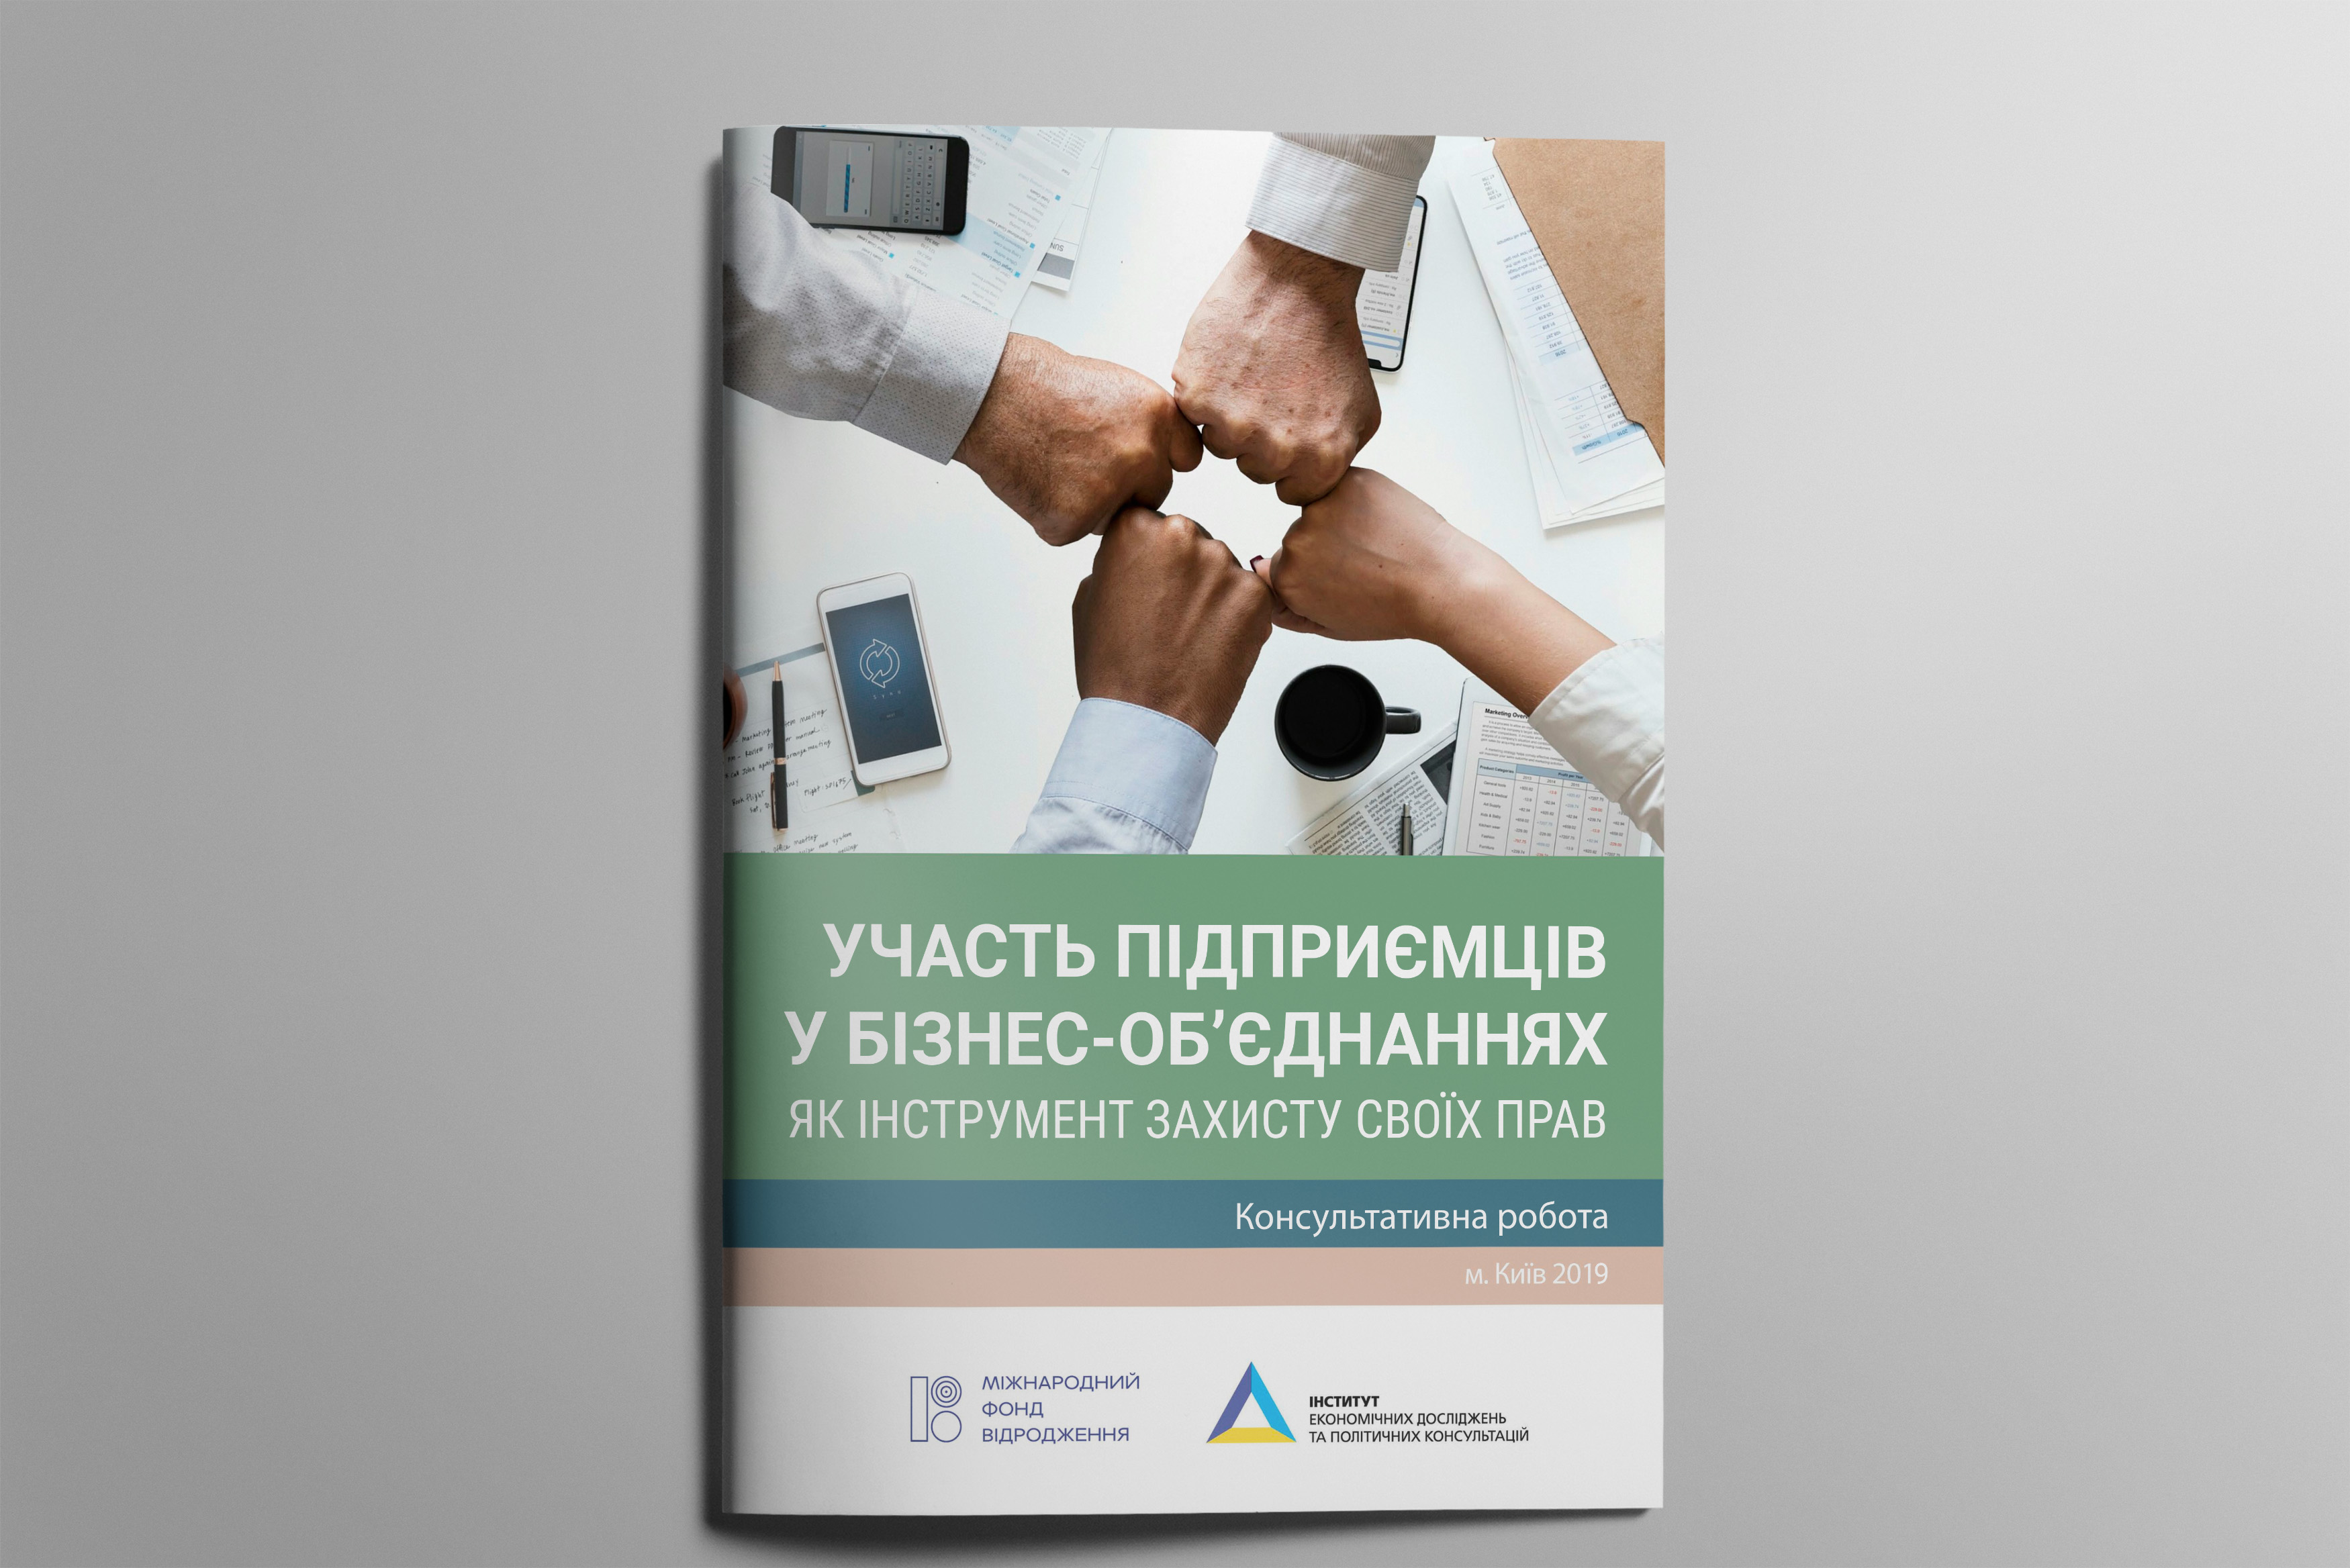 http://www.ier.com.ua/files/publications/Policy_papers/IER/2019/business_association1.jpg